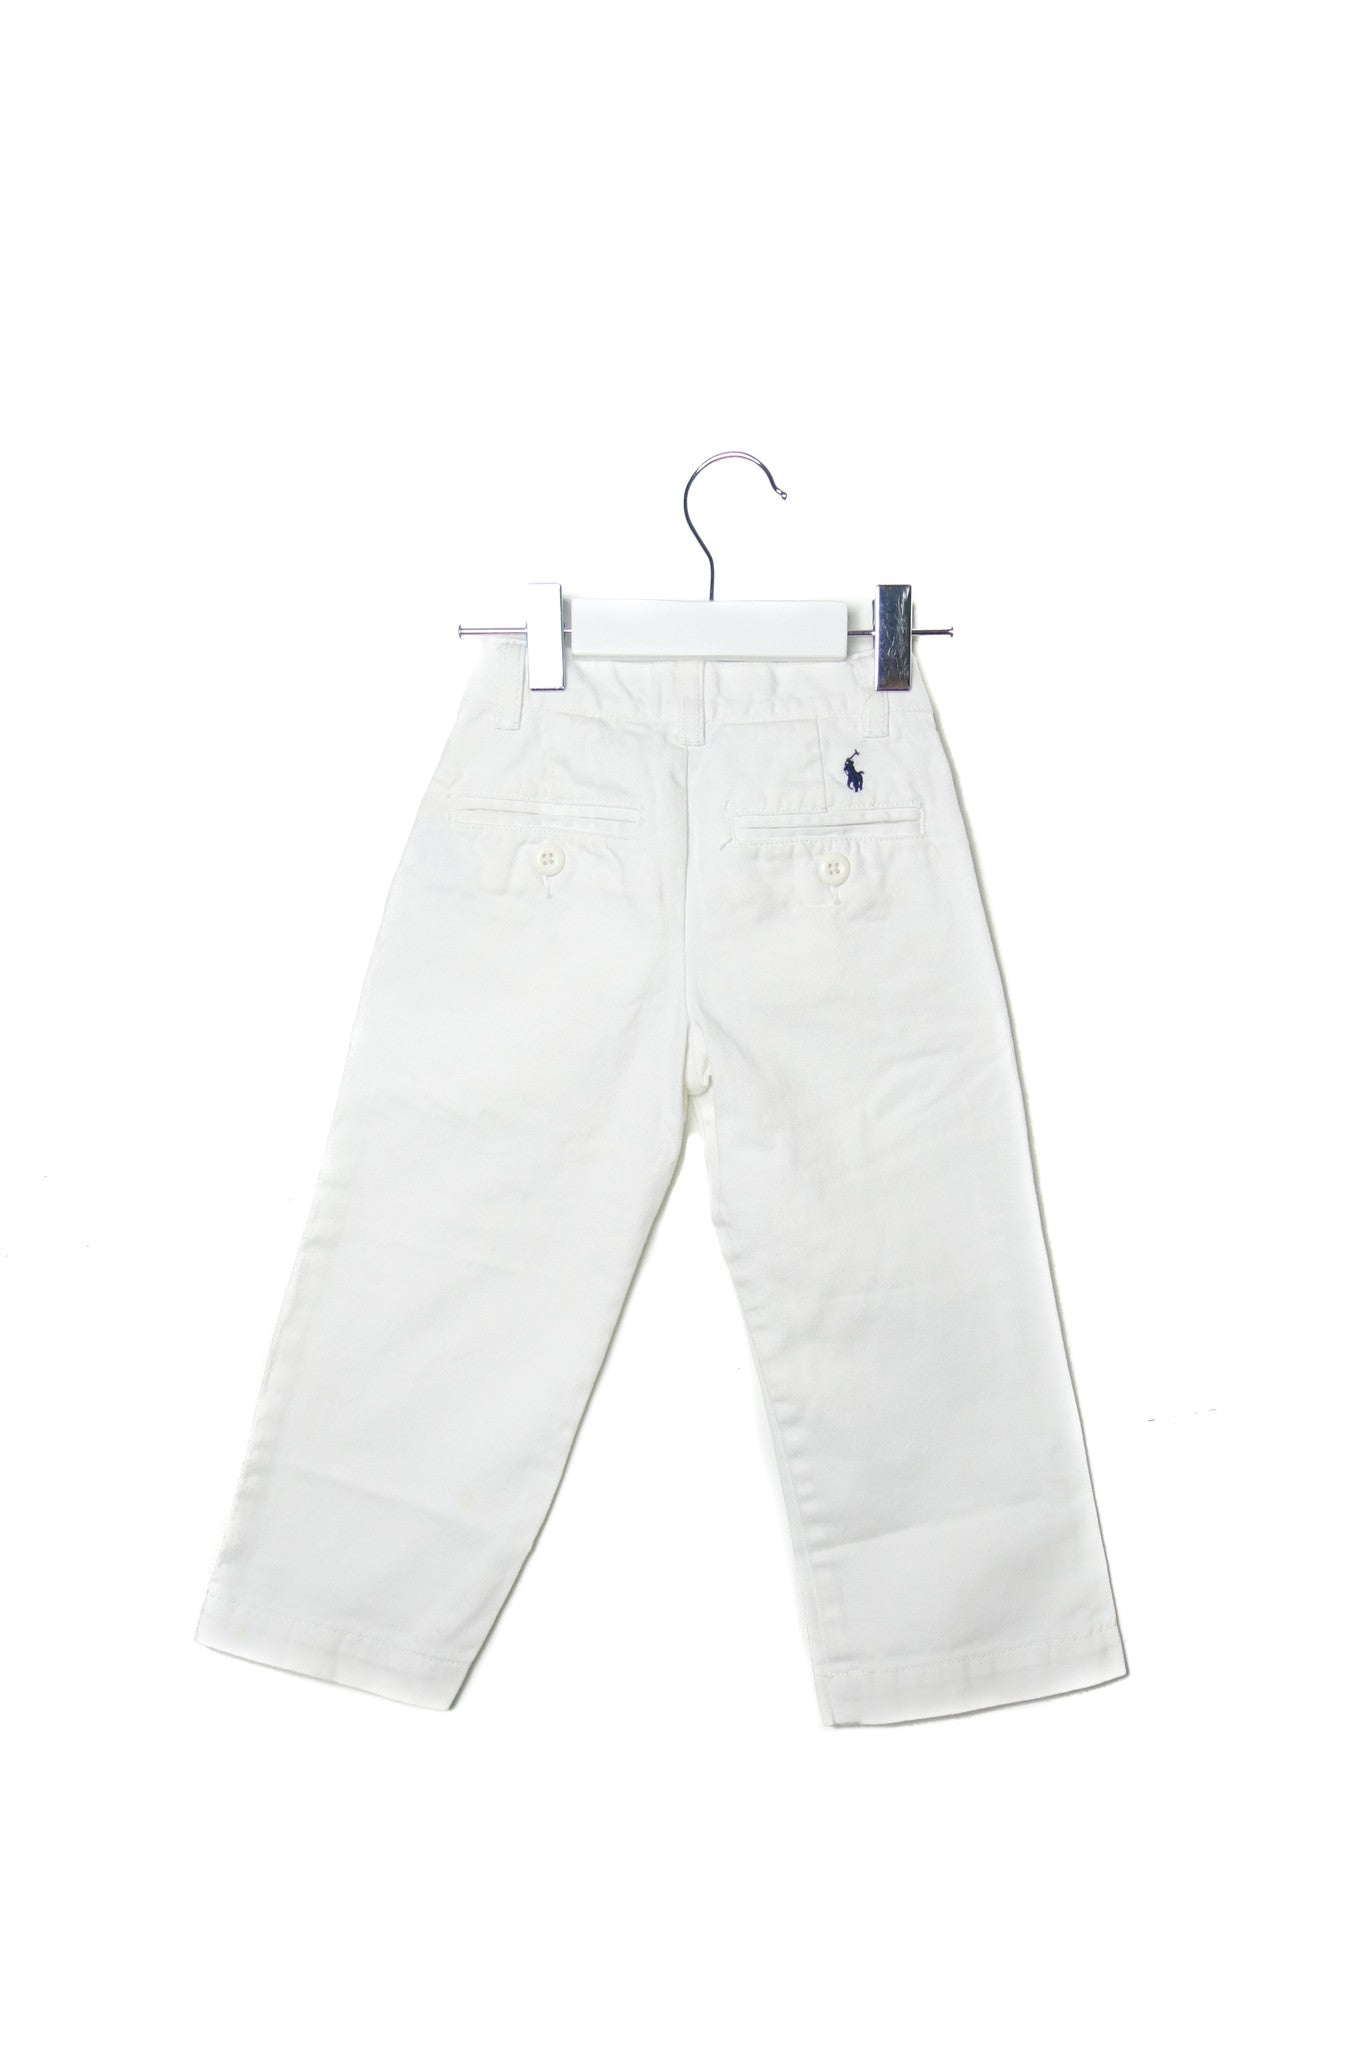 10001800 Polo Ralph Lauren Kids~Pants 2T at Retykle